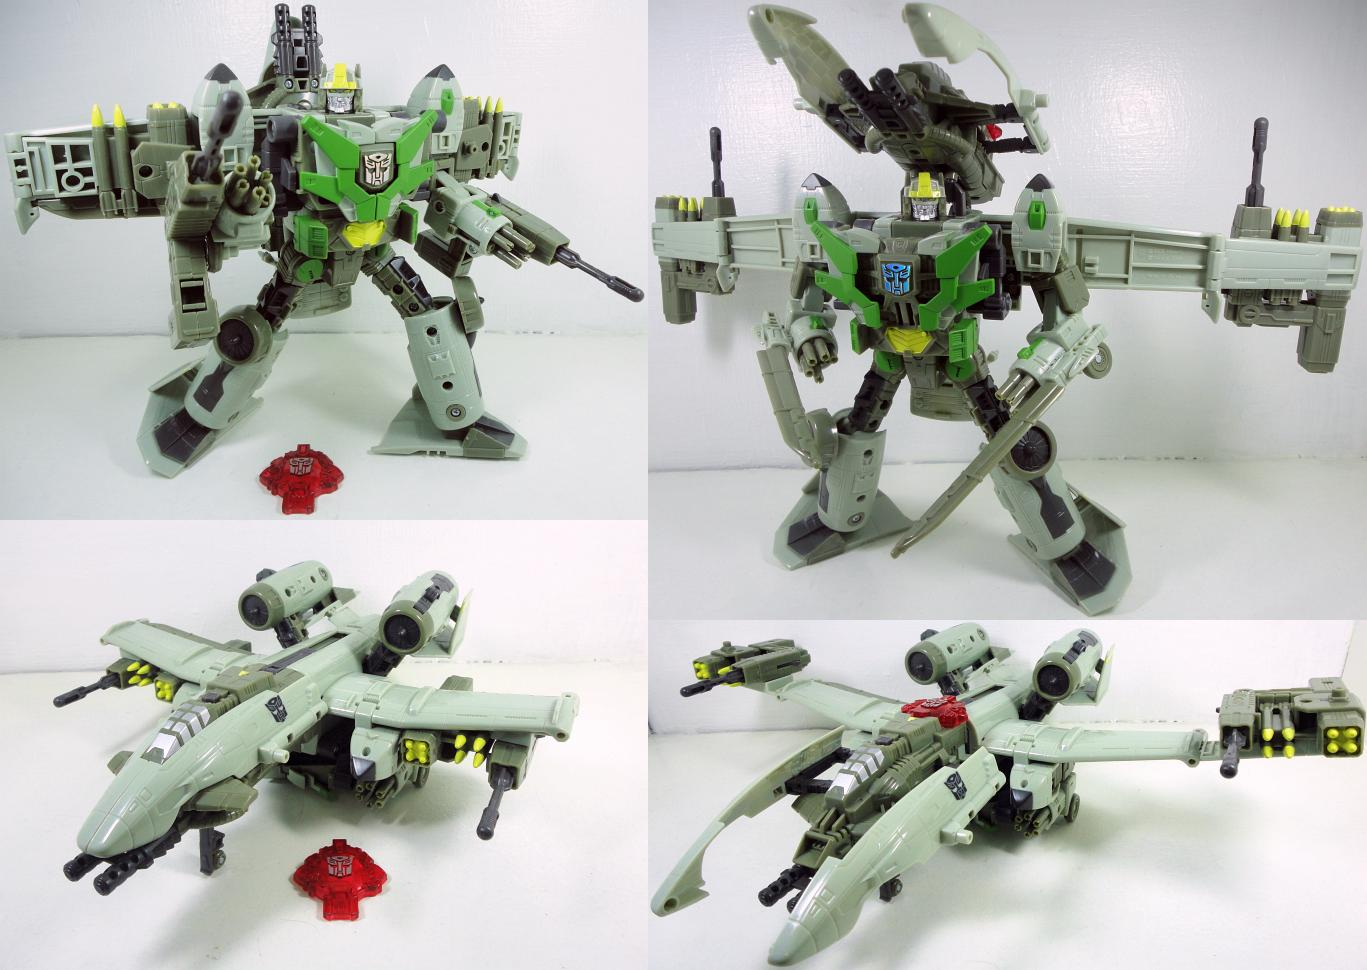 Autobot-Wingblade-transformers-33822529-1367-970.jpg